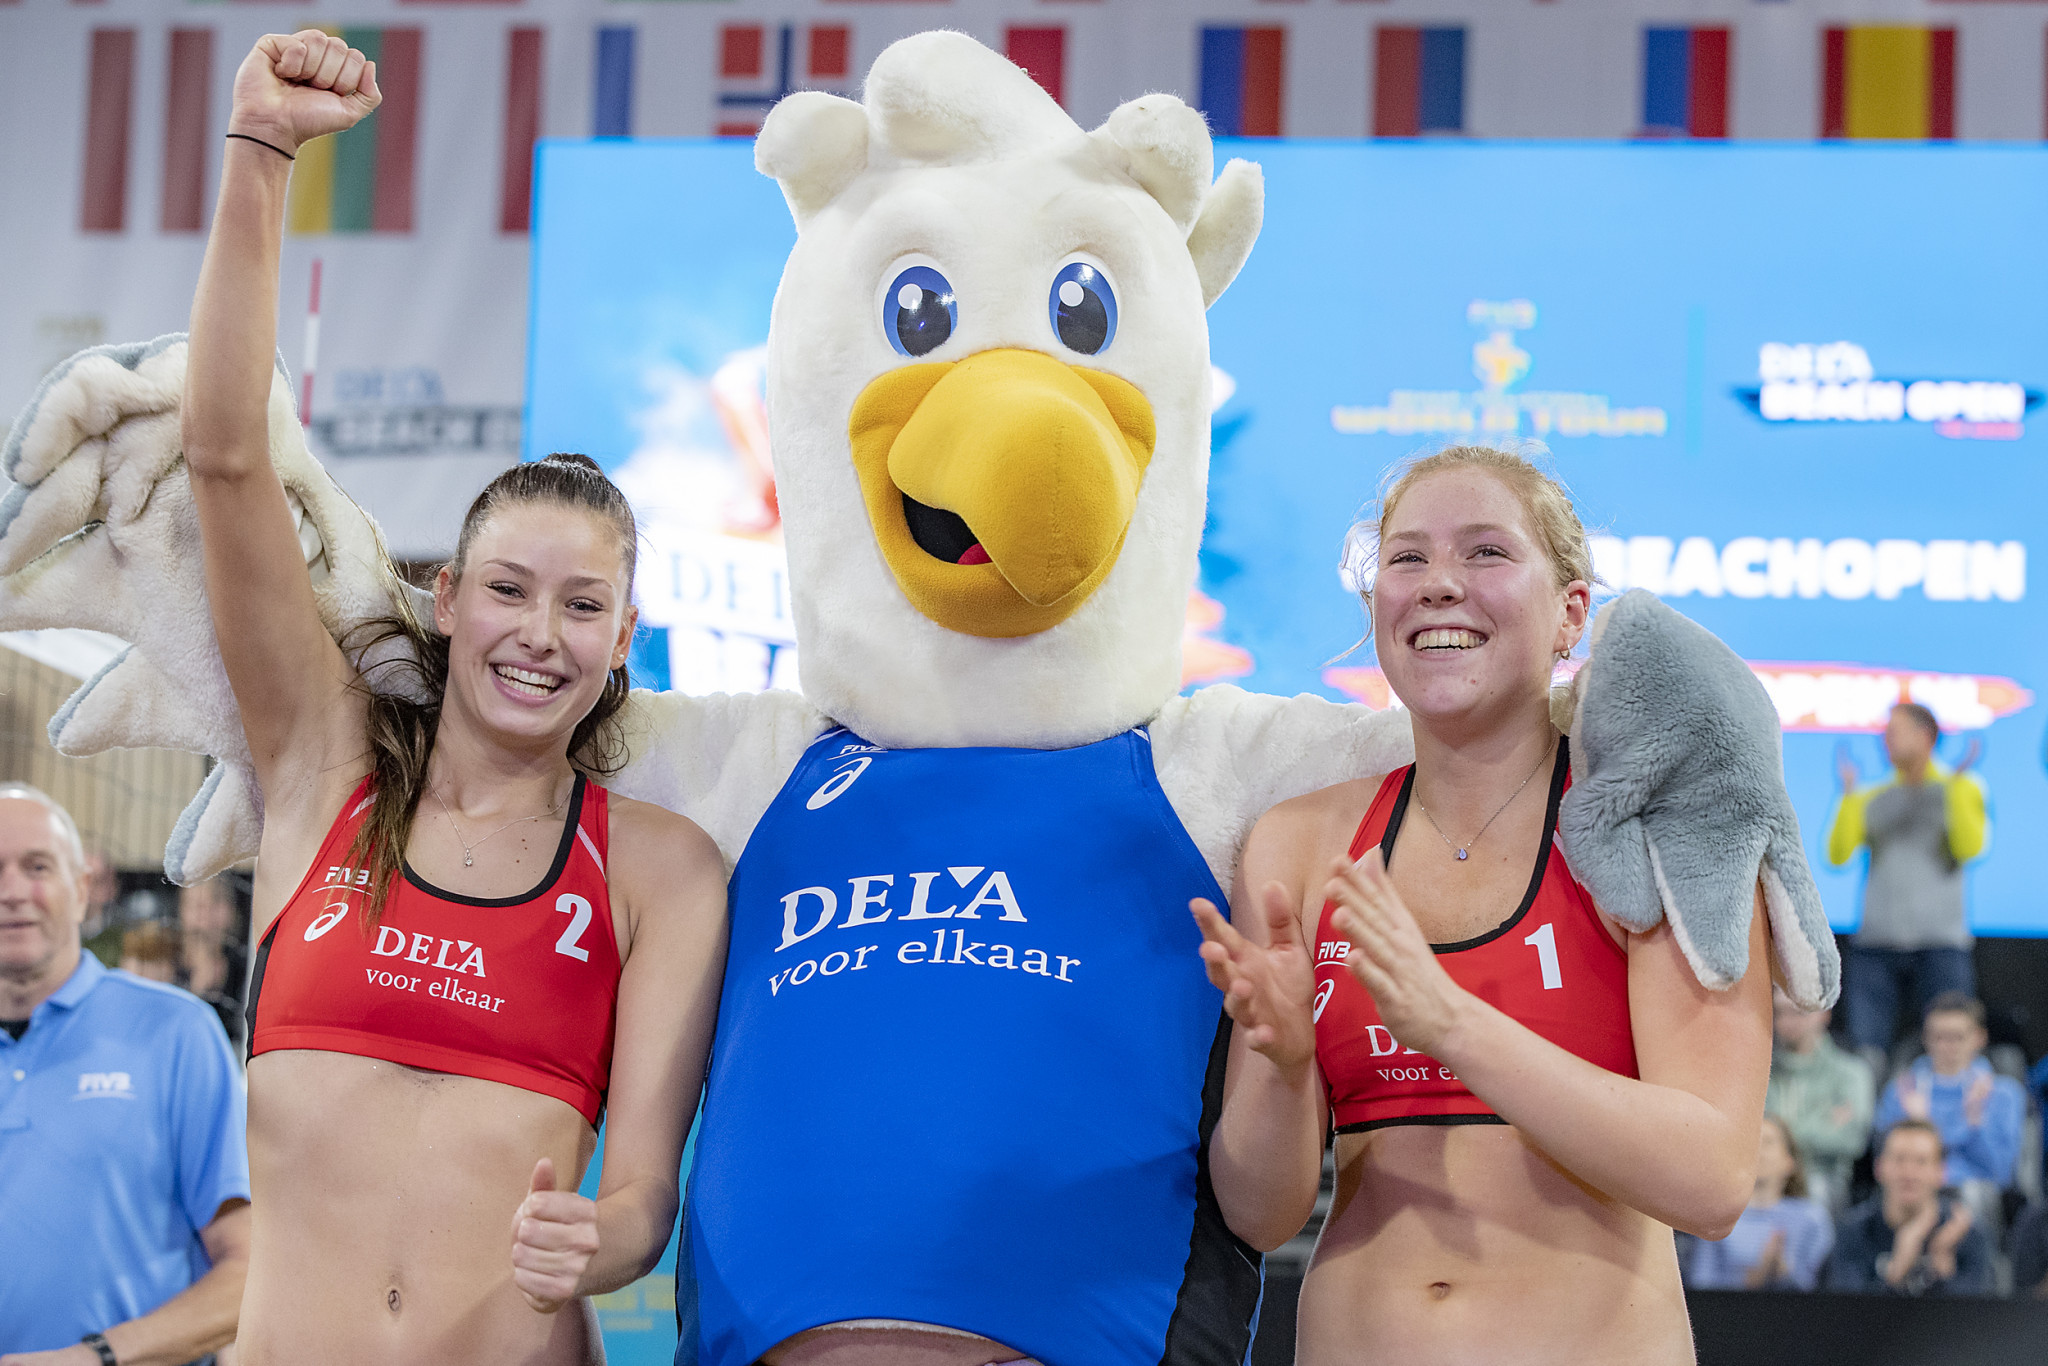 Emma Piersma and Puk Stubbe of The Netherlands delighted the home crowd by winning both of their qualifying matches to progress to the main draw of the FIVB Beach Volleyball World Tour in The Hague ©FIVB